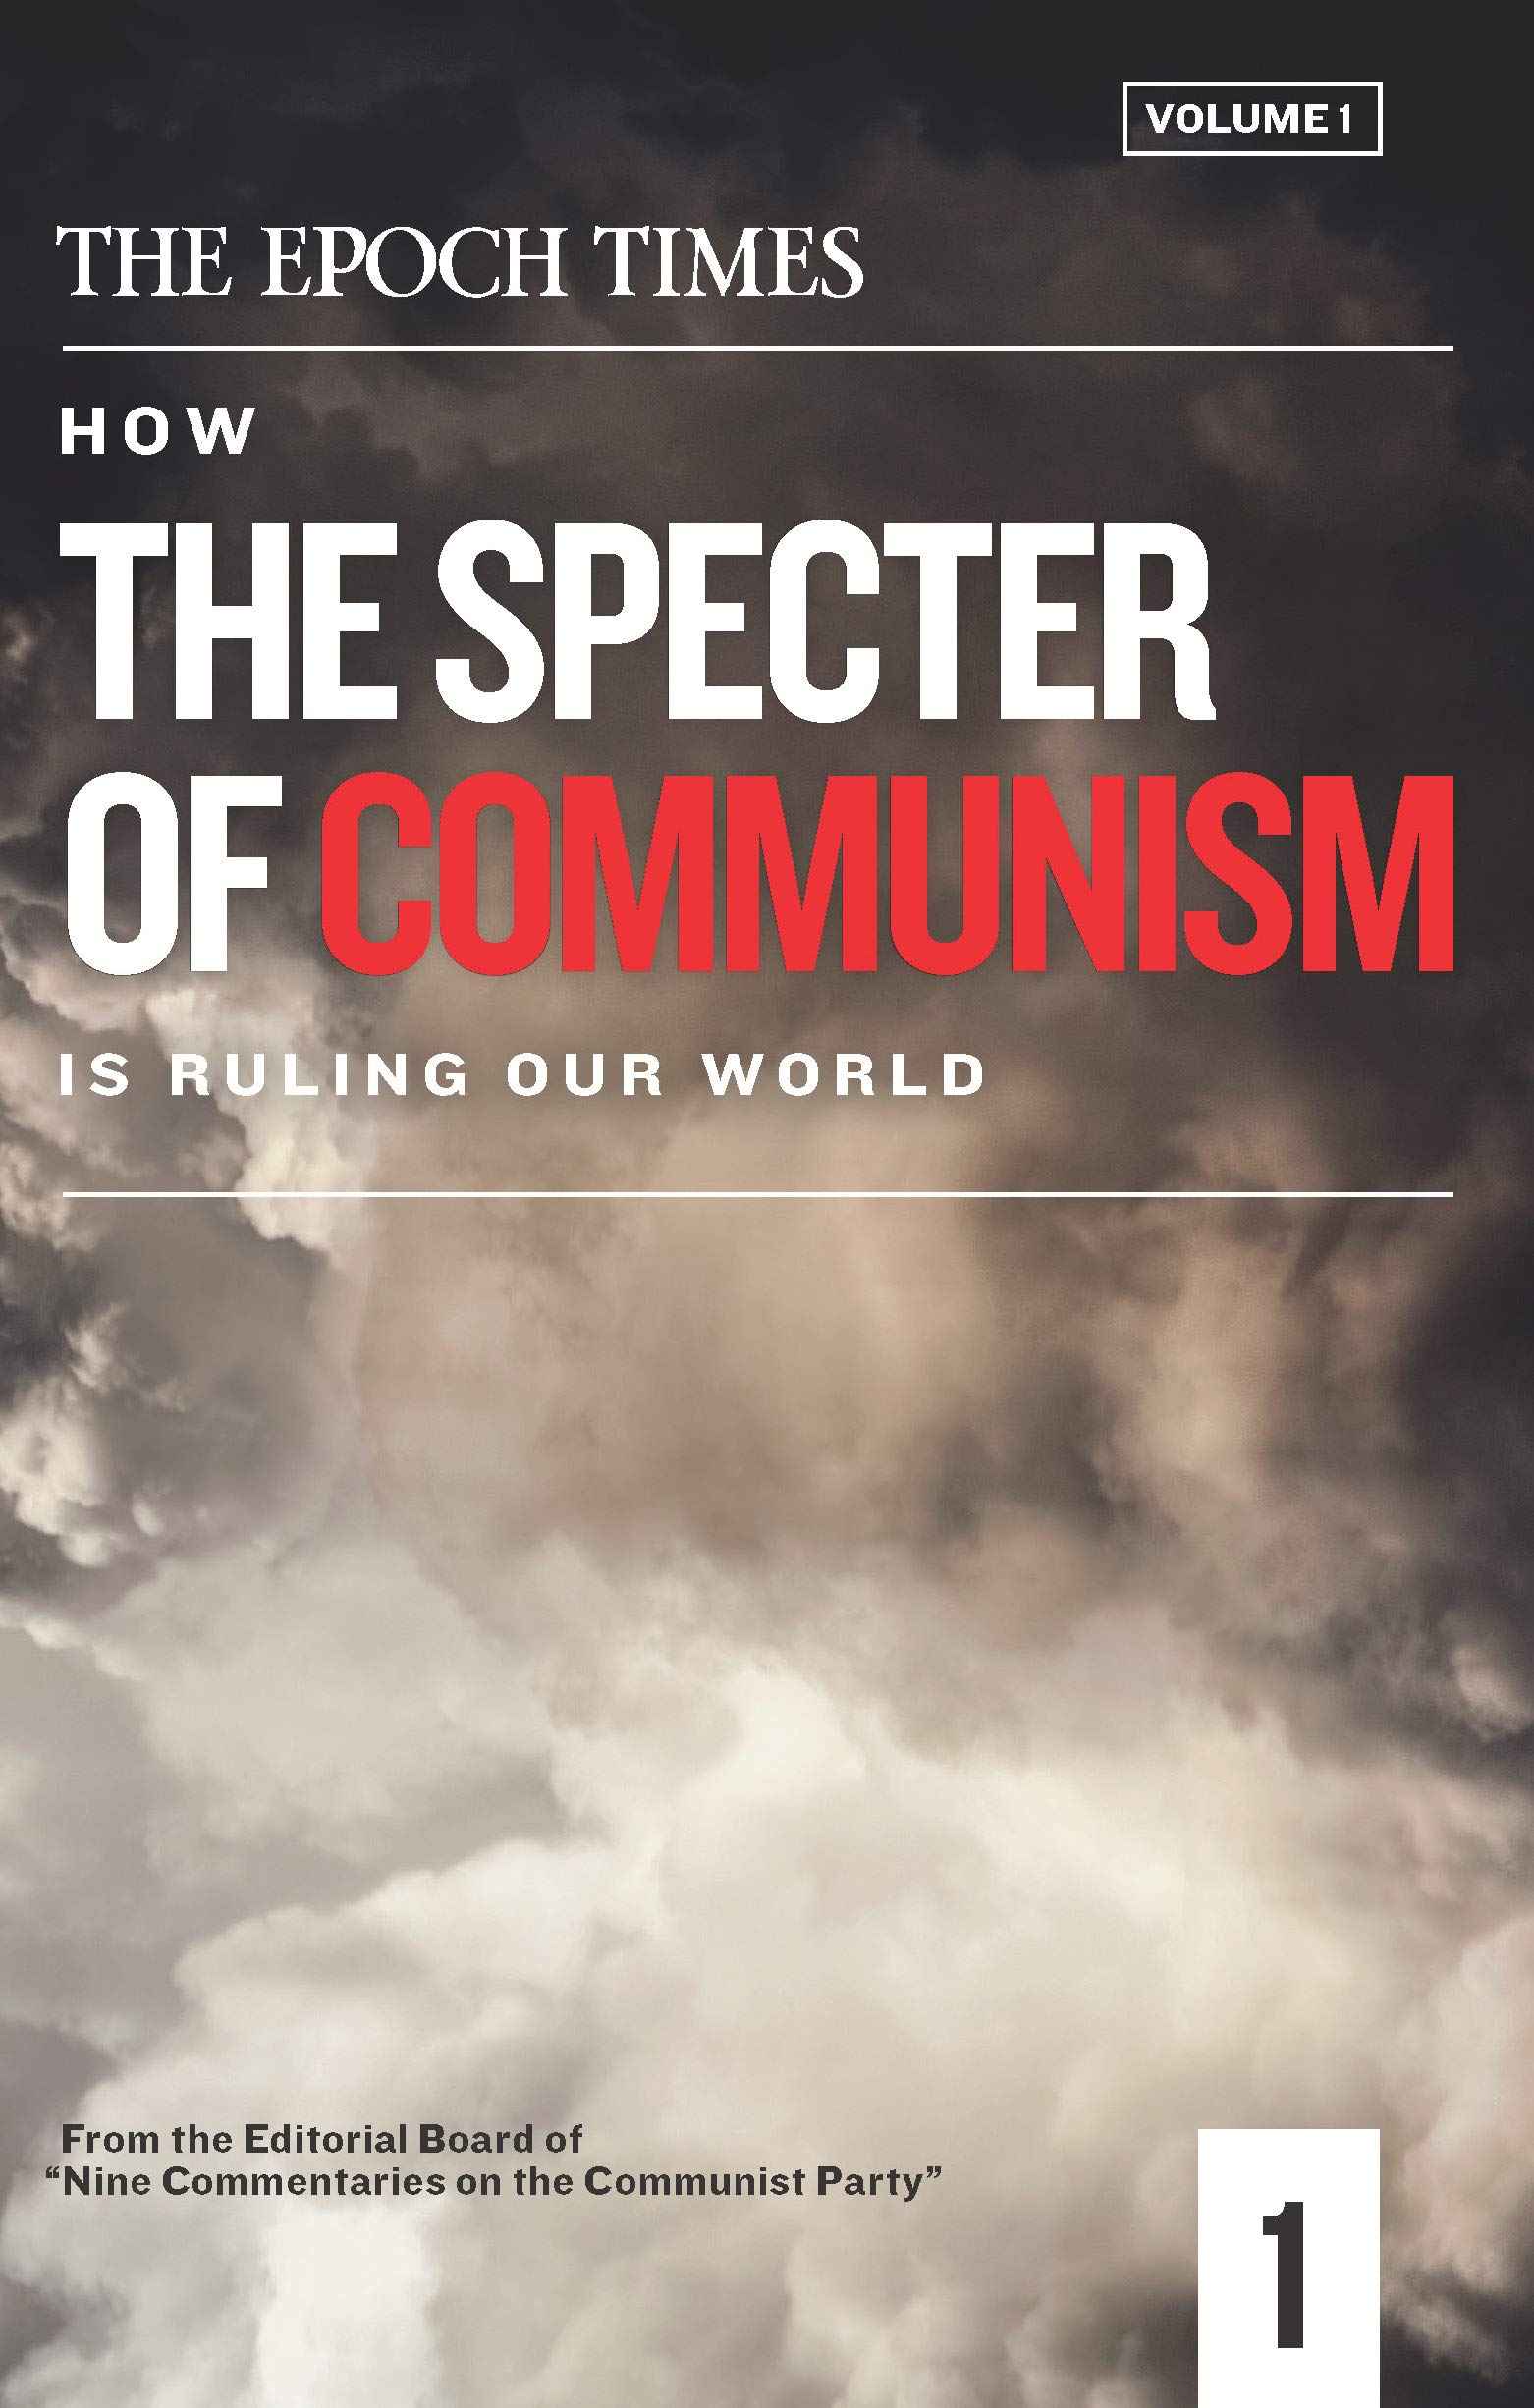 How the Specter of Communism Is Ruling Our World (Volume 1 of 3)